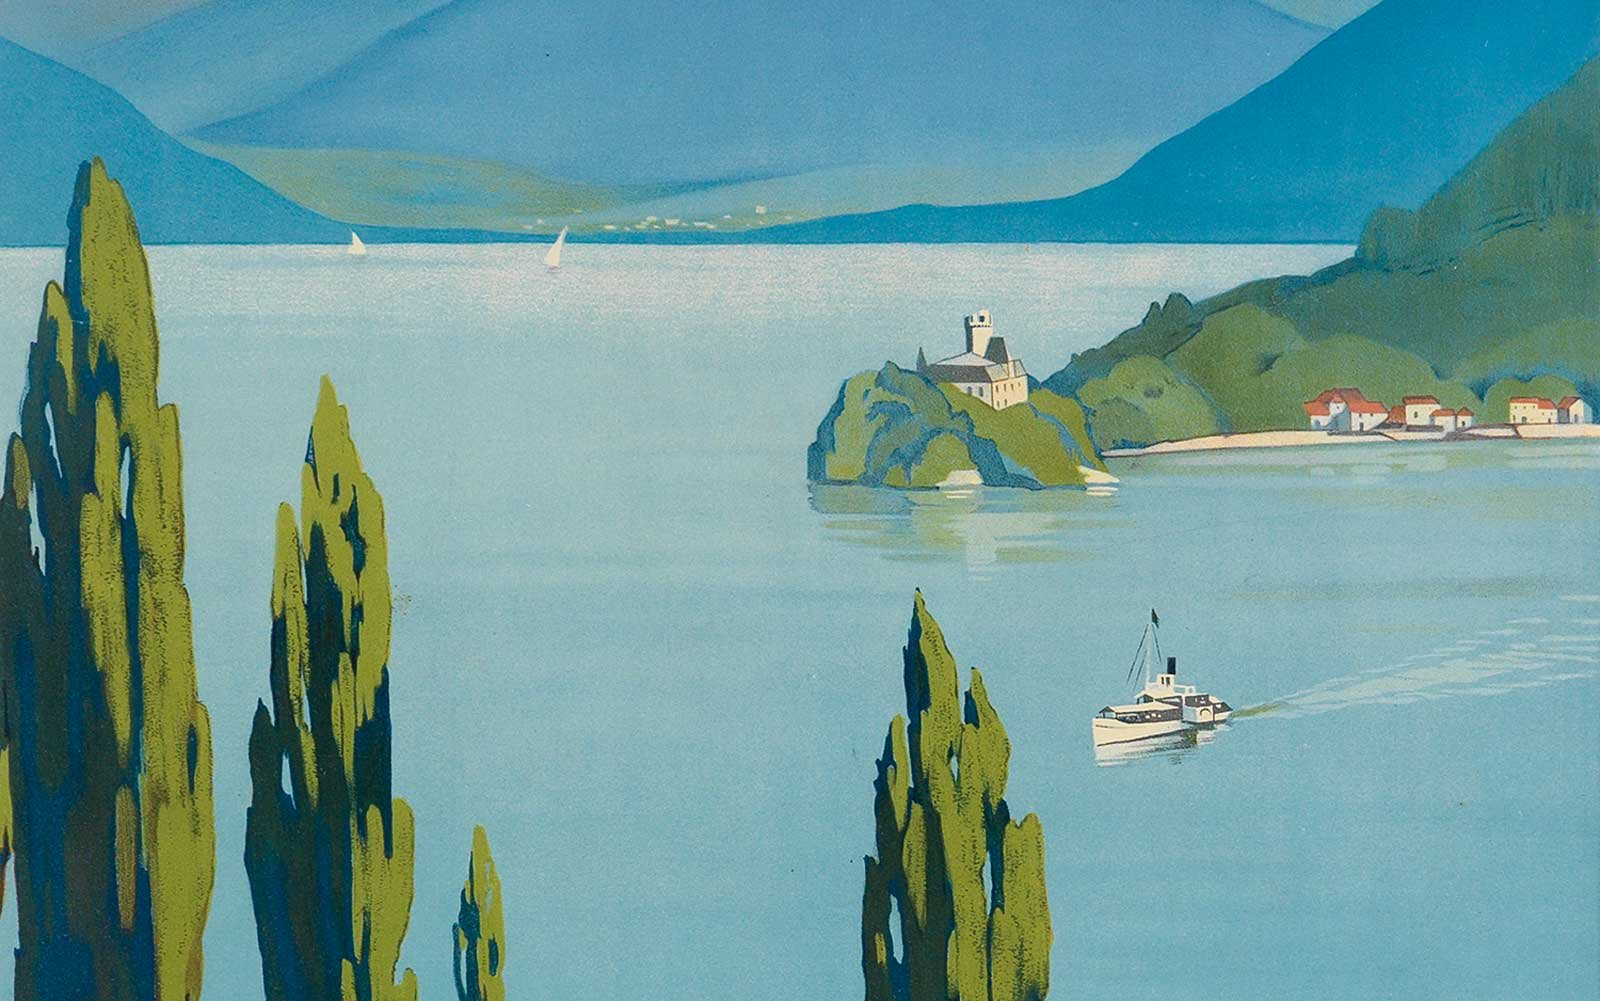 Картинки по запросу These Glamorous Vintage Travel Posters Are Up for Auction